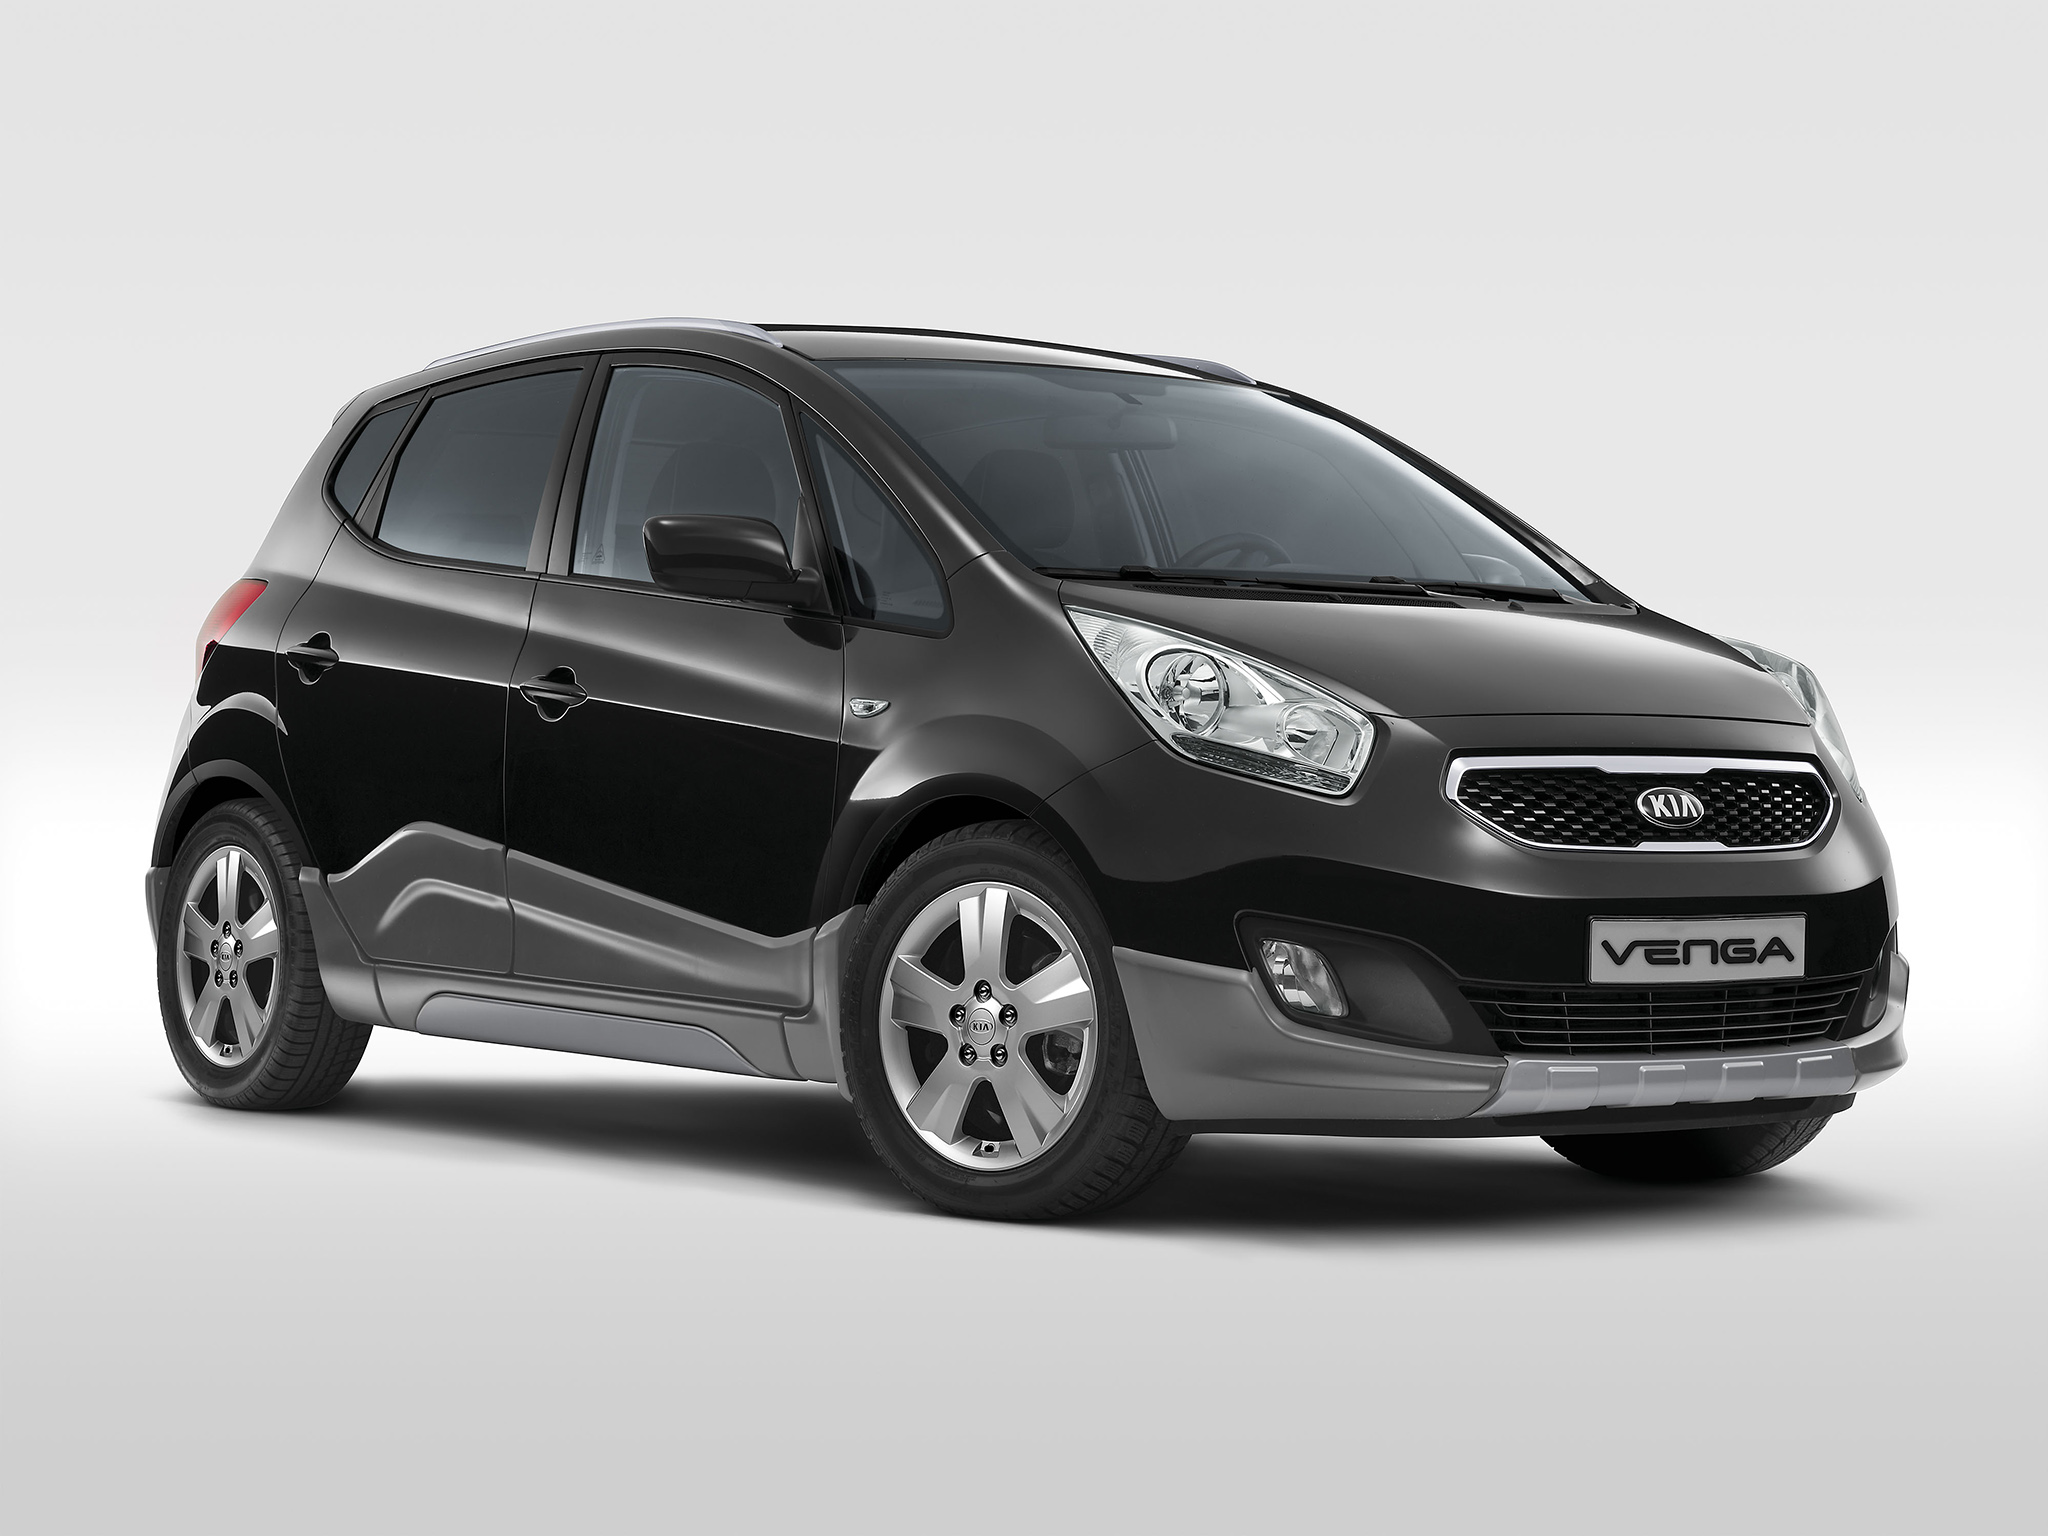 2014 kia venga crossover unveiled autoevolution. Black Bedroom Furniture Sets. Home Design Ideas